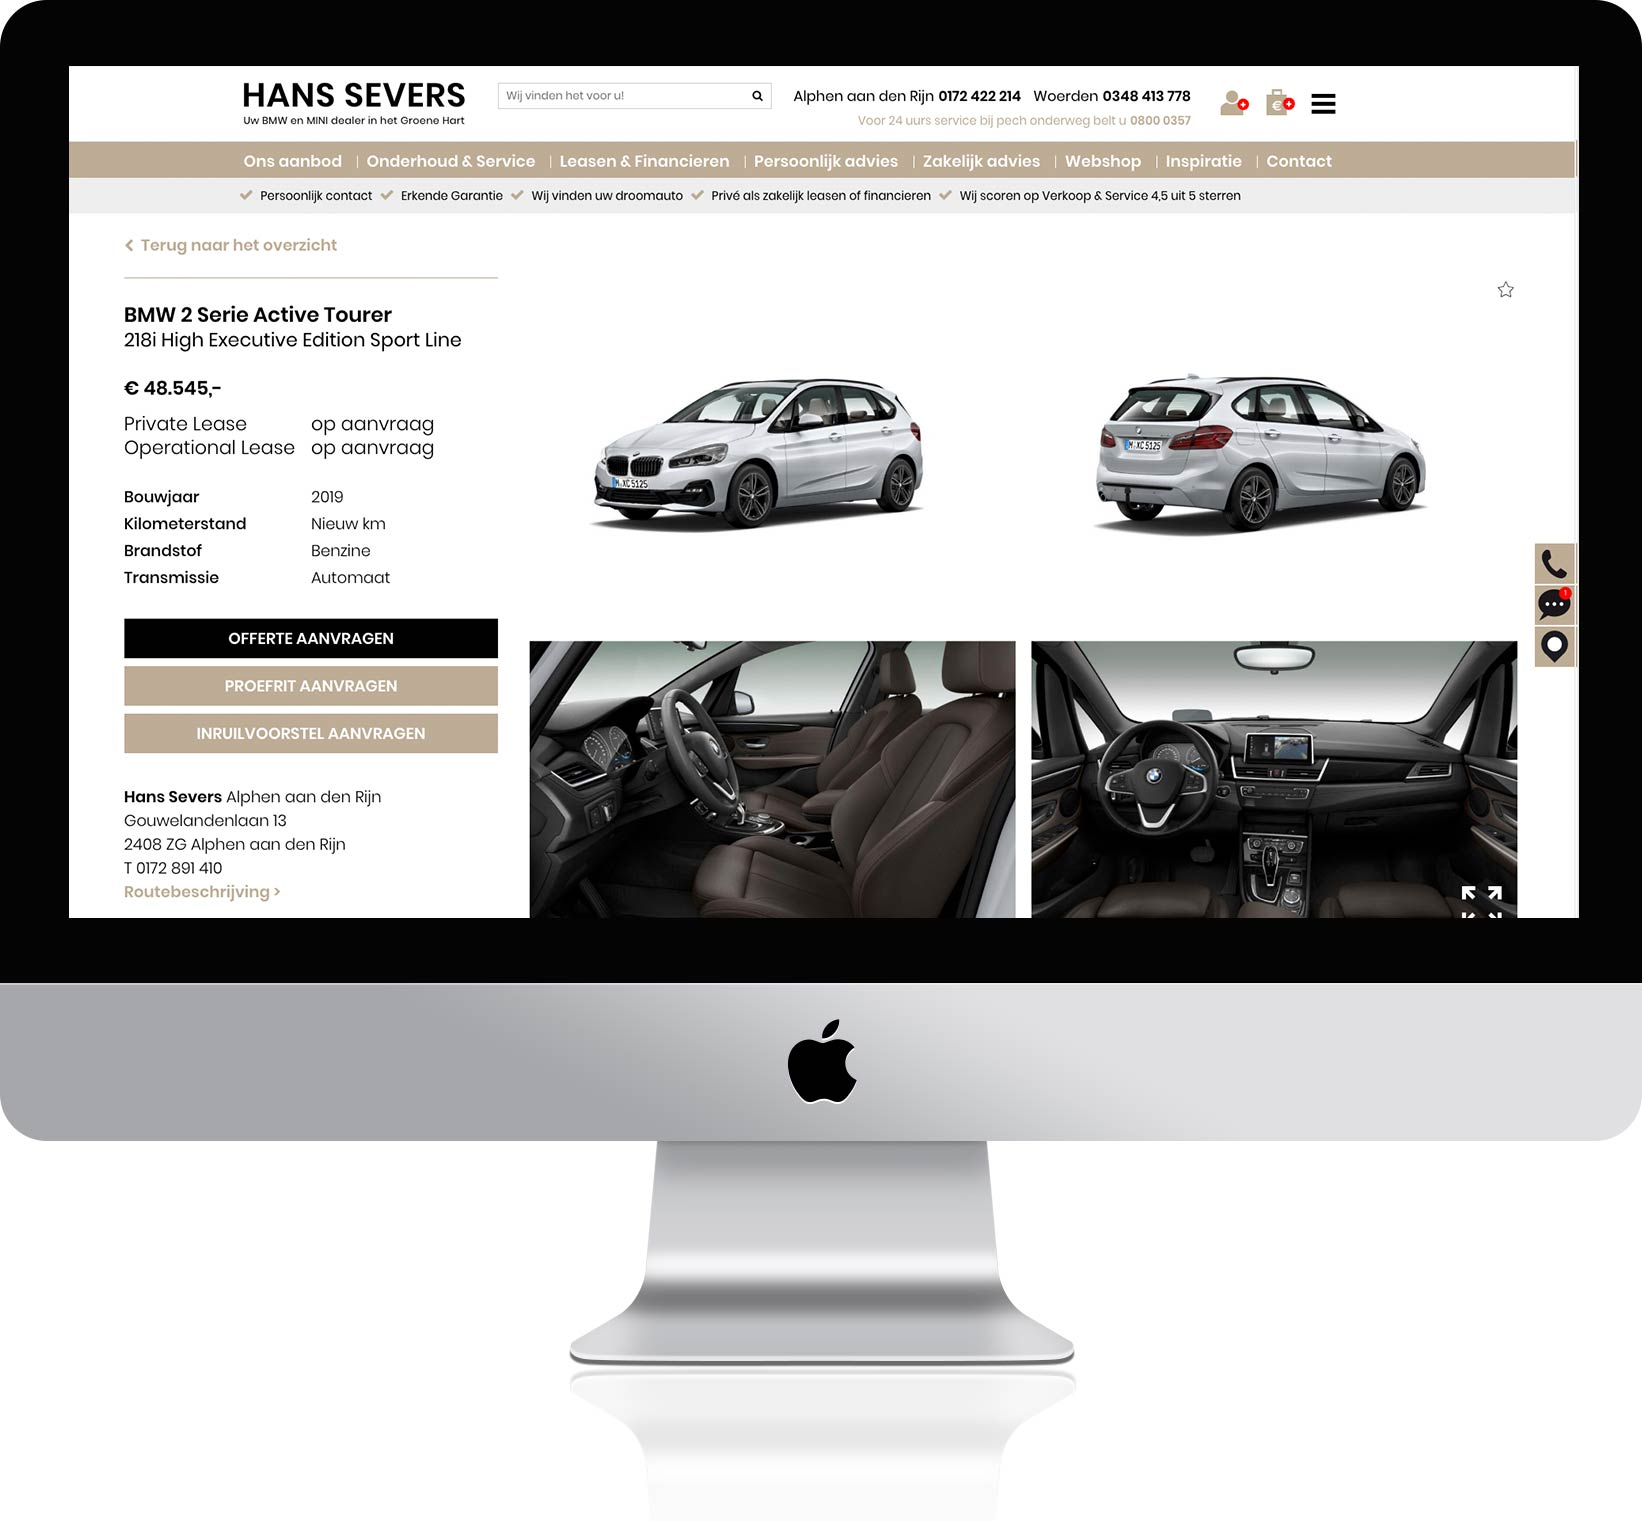 Detailpagina website